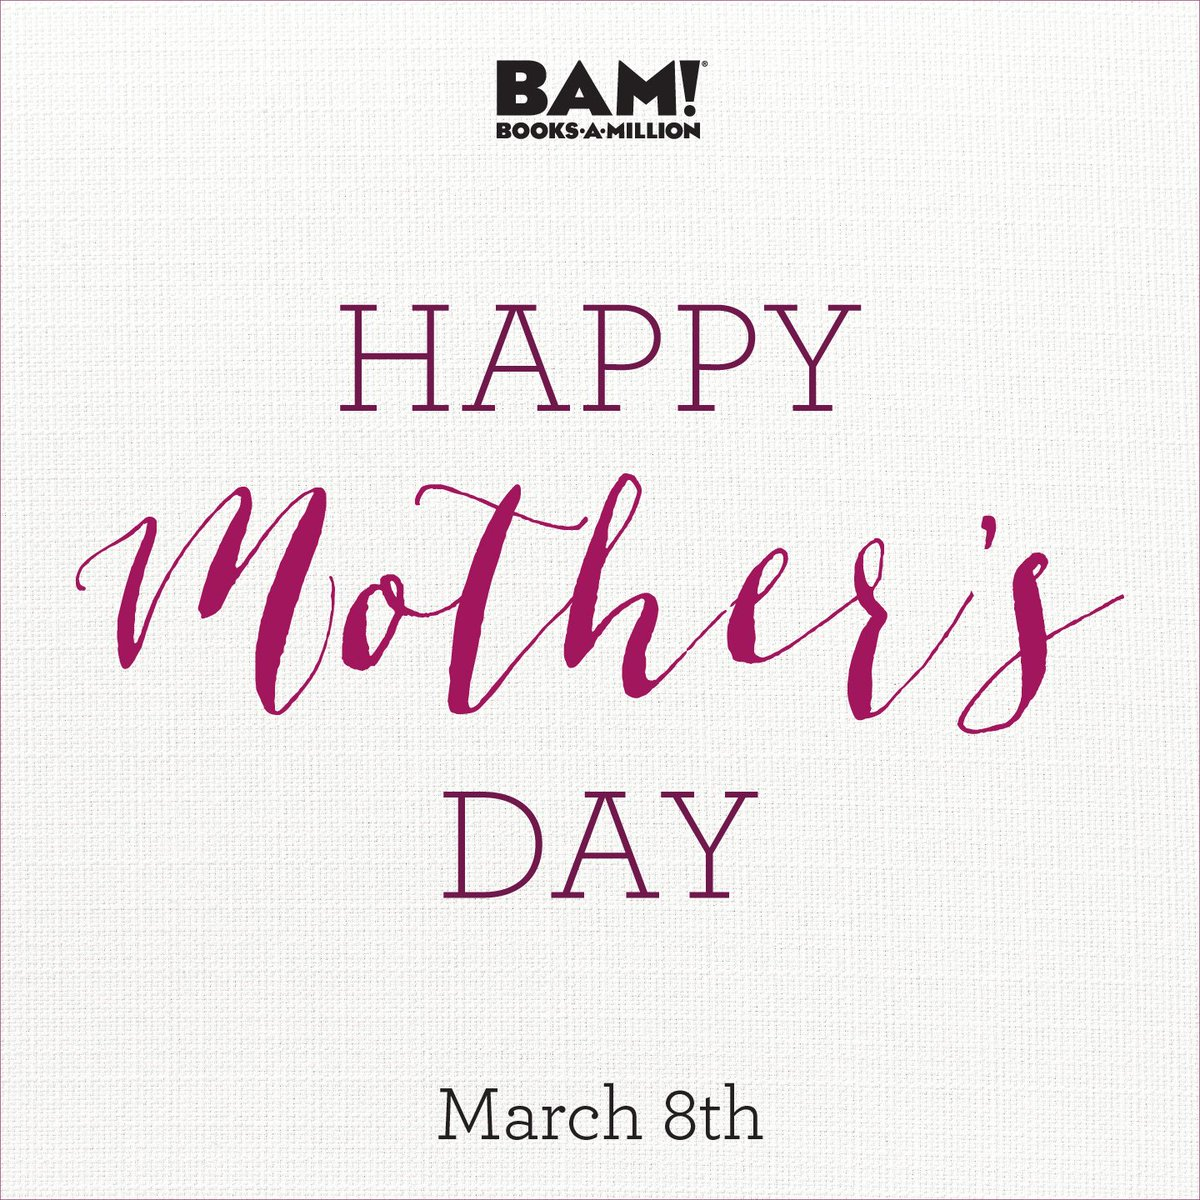 Spend this #MothersDay the best way possible: reading! #BooksAMillion